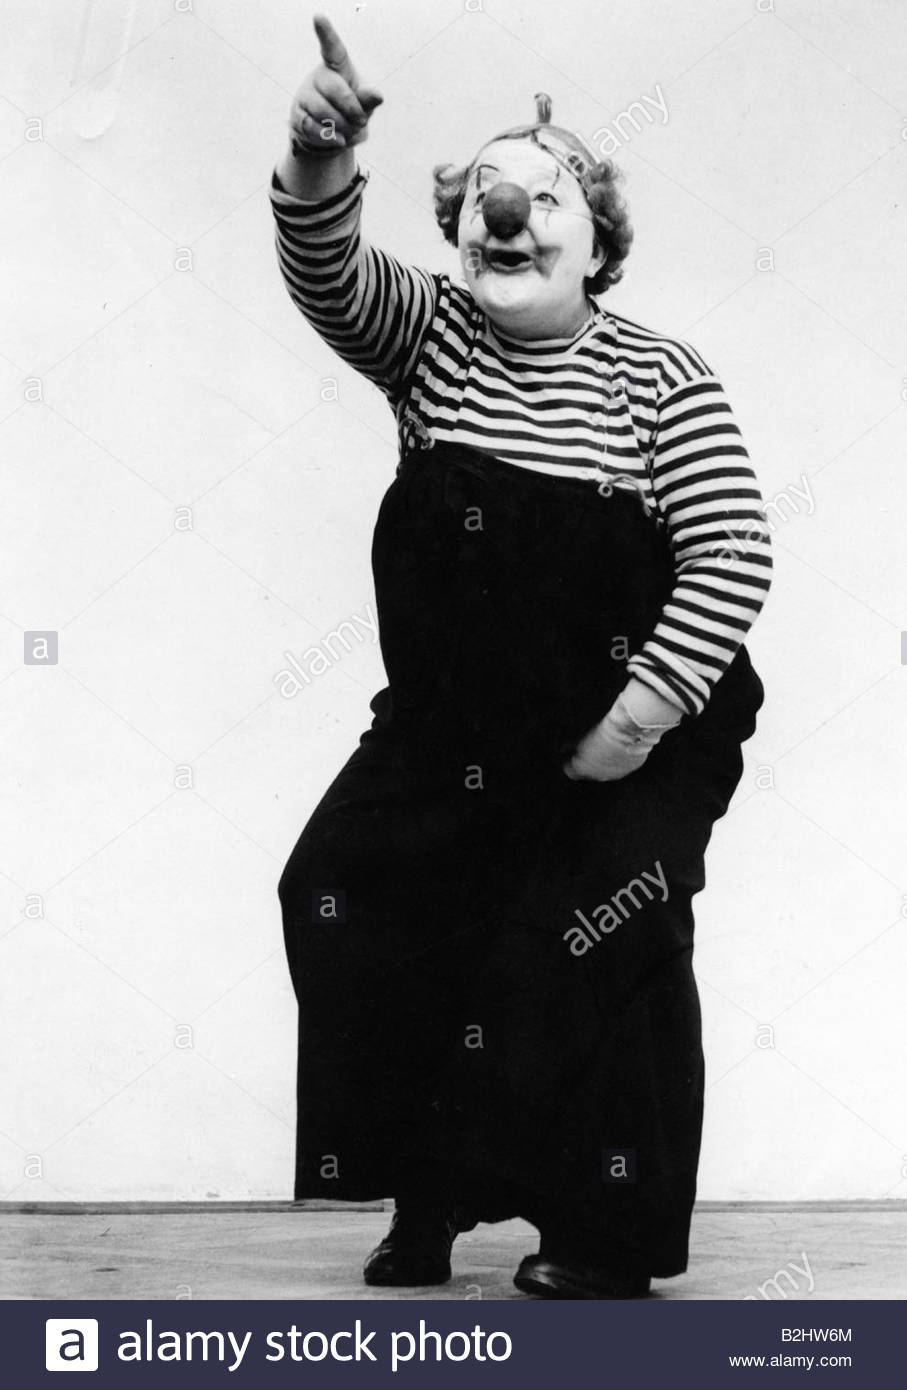 circus, Jany Cox as clown, 20th century, cinema, pointing with finger in air, disguise, costume, disguised, artist, - Stock Image